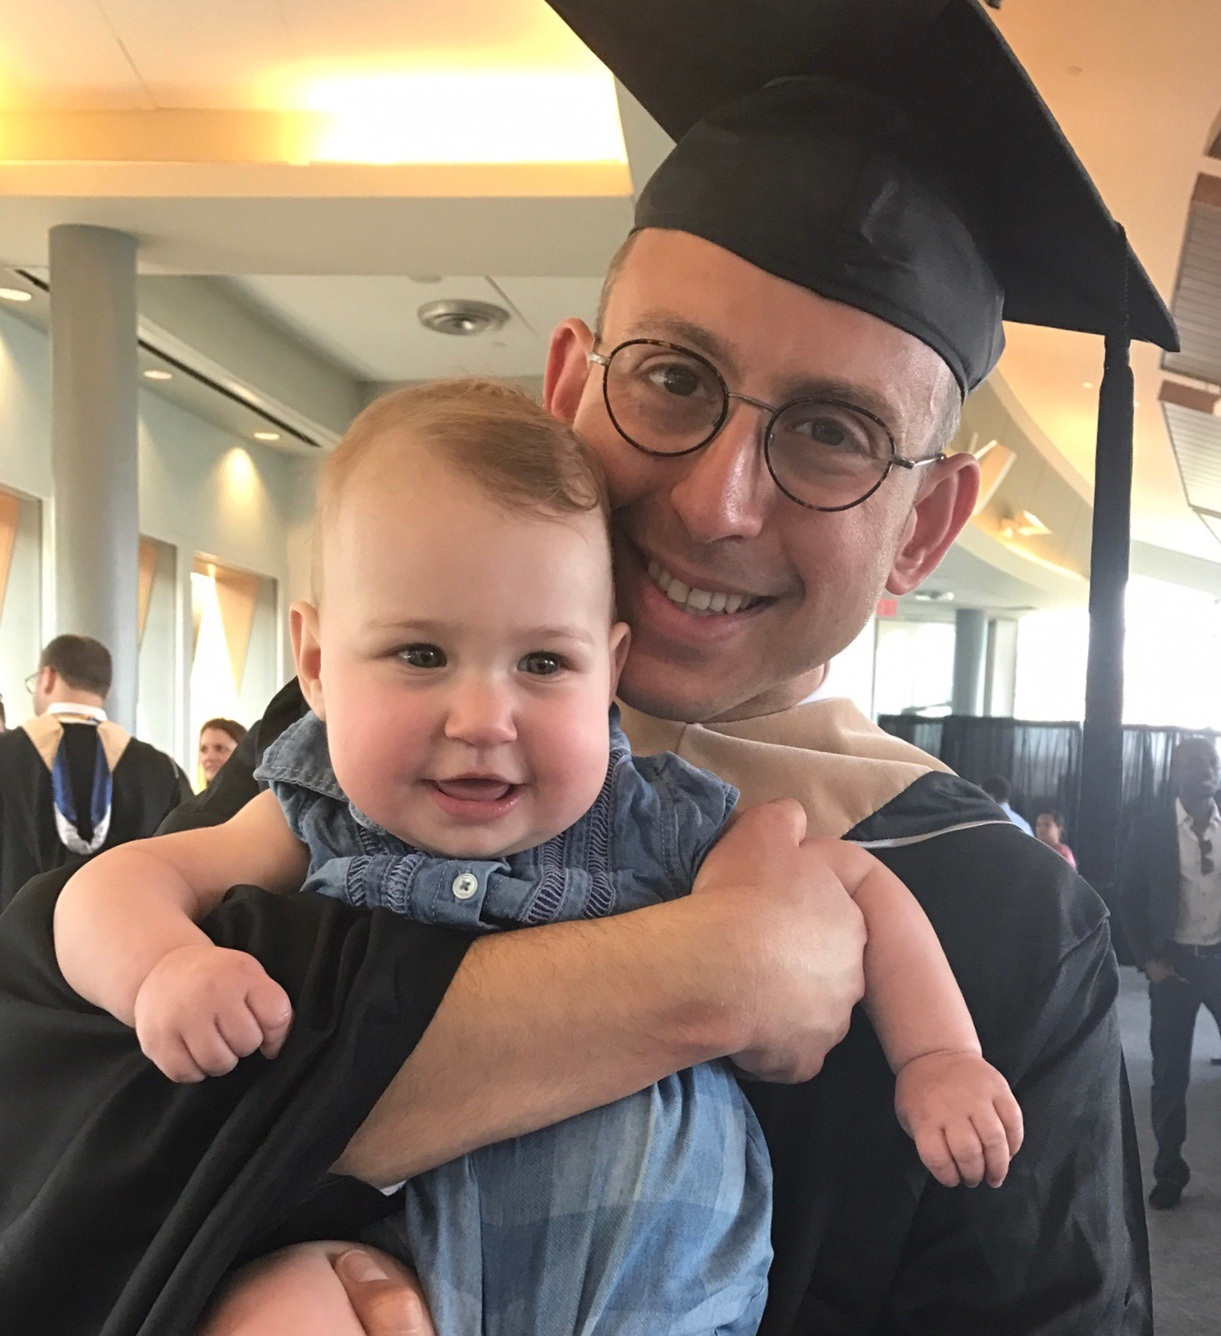 Benjy with our daughter, Adrienne, at his MBA graduation from Georgetown University's McDonough School of Business in May 2017. Hoya Saxa!